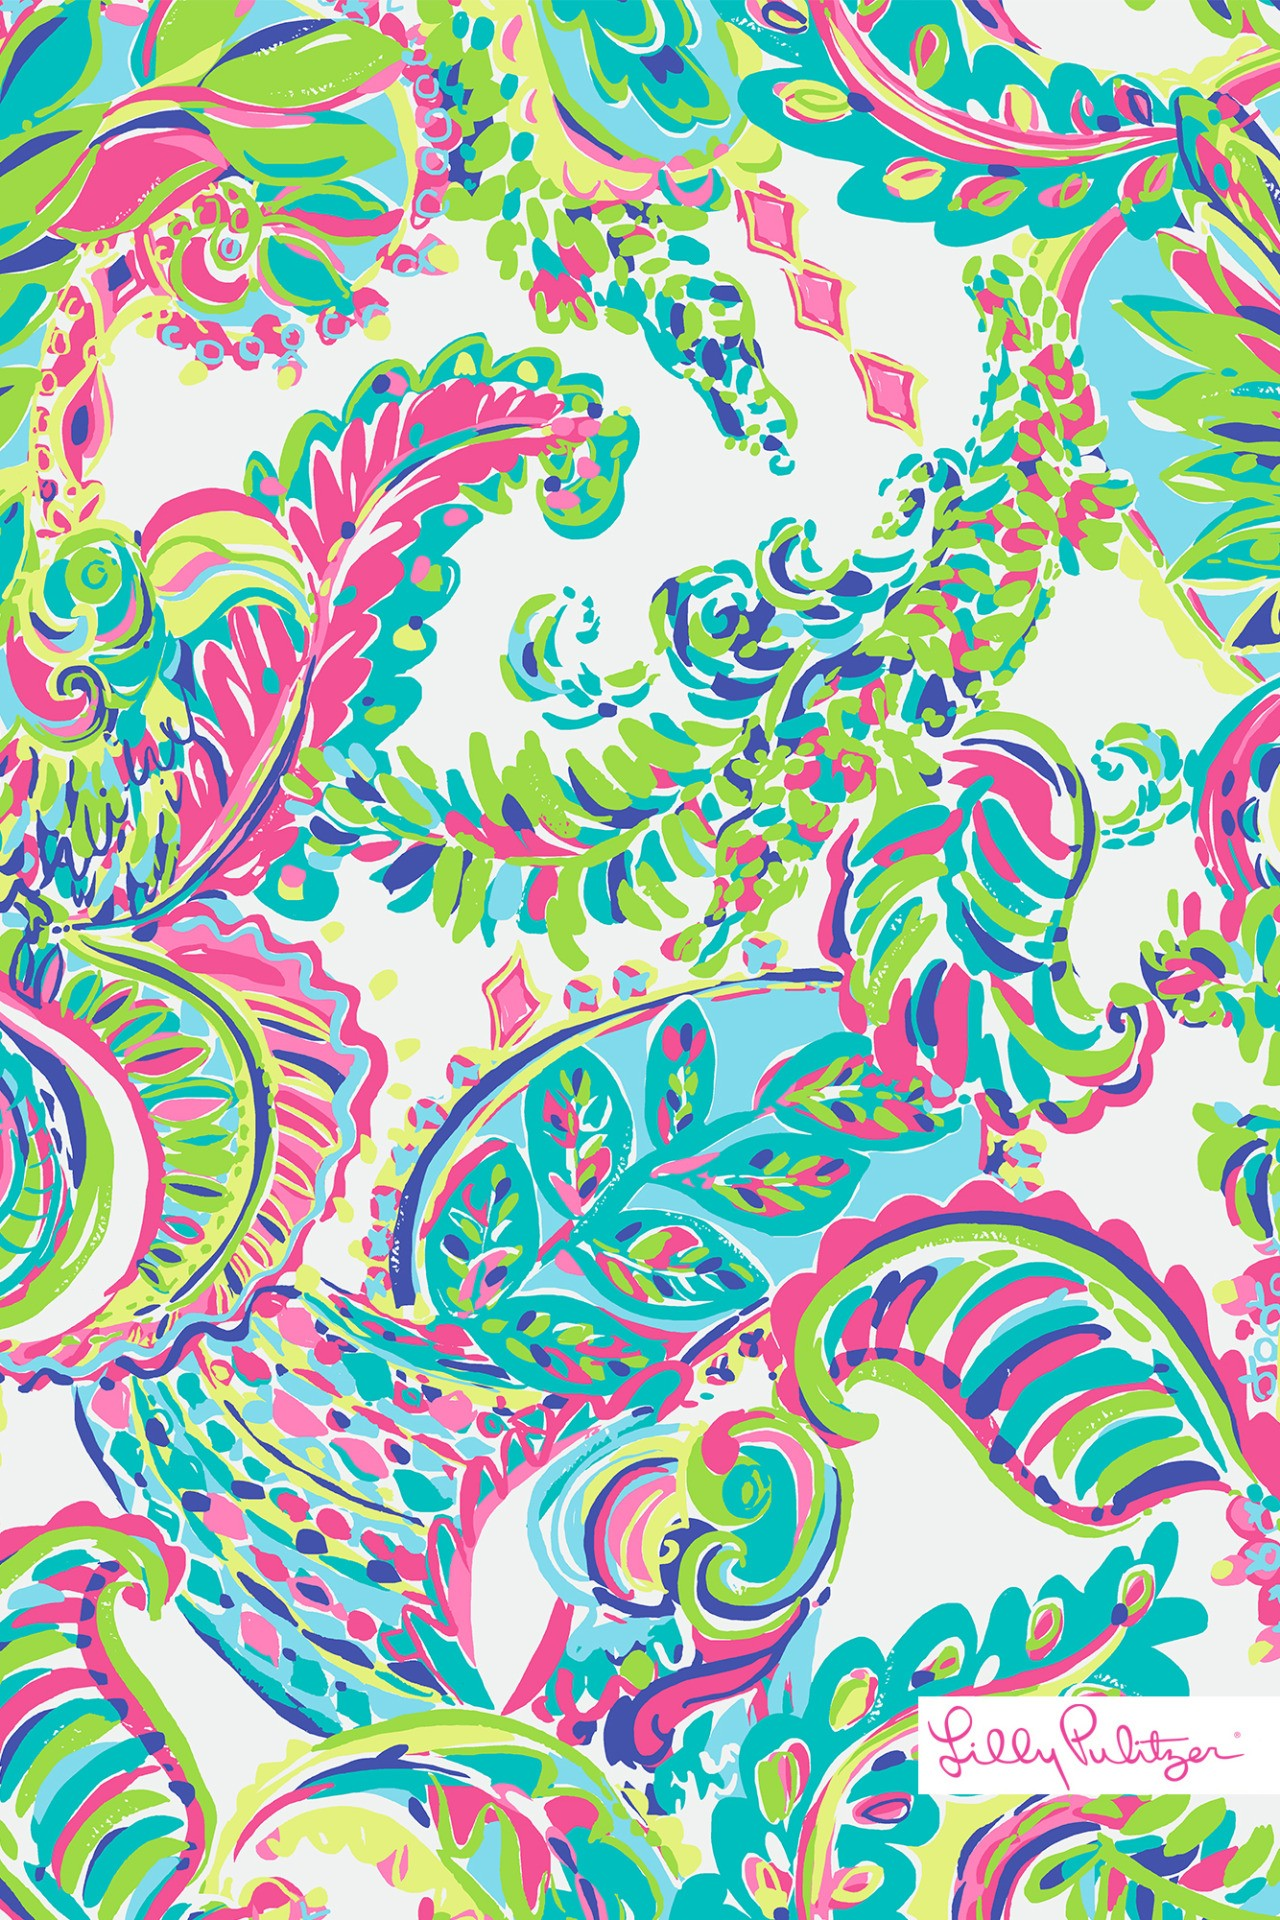 75 lilly pulitzer backgrounds download free amazing hd. Black Bedroom Furniture Sets. Home Design Ideas